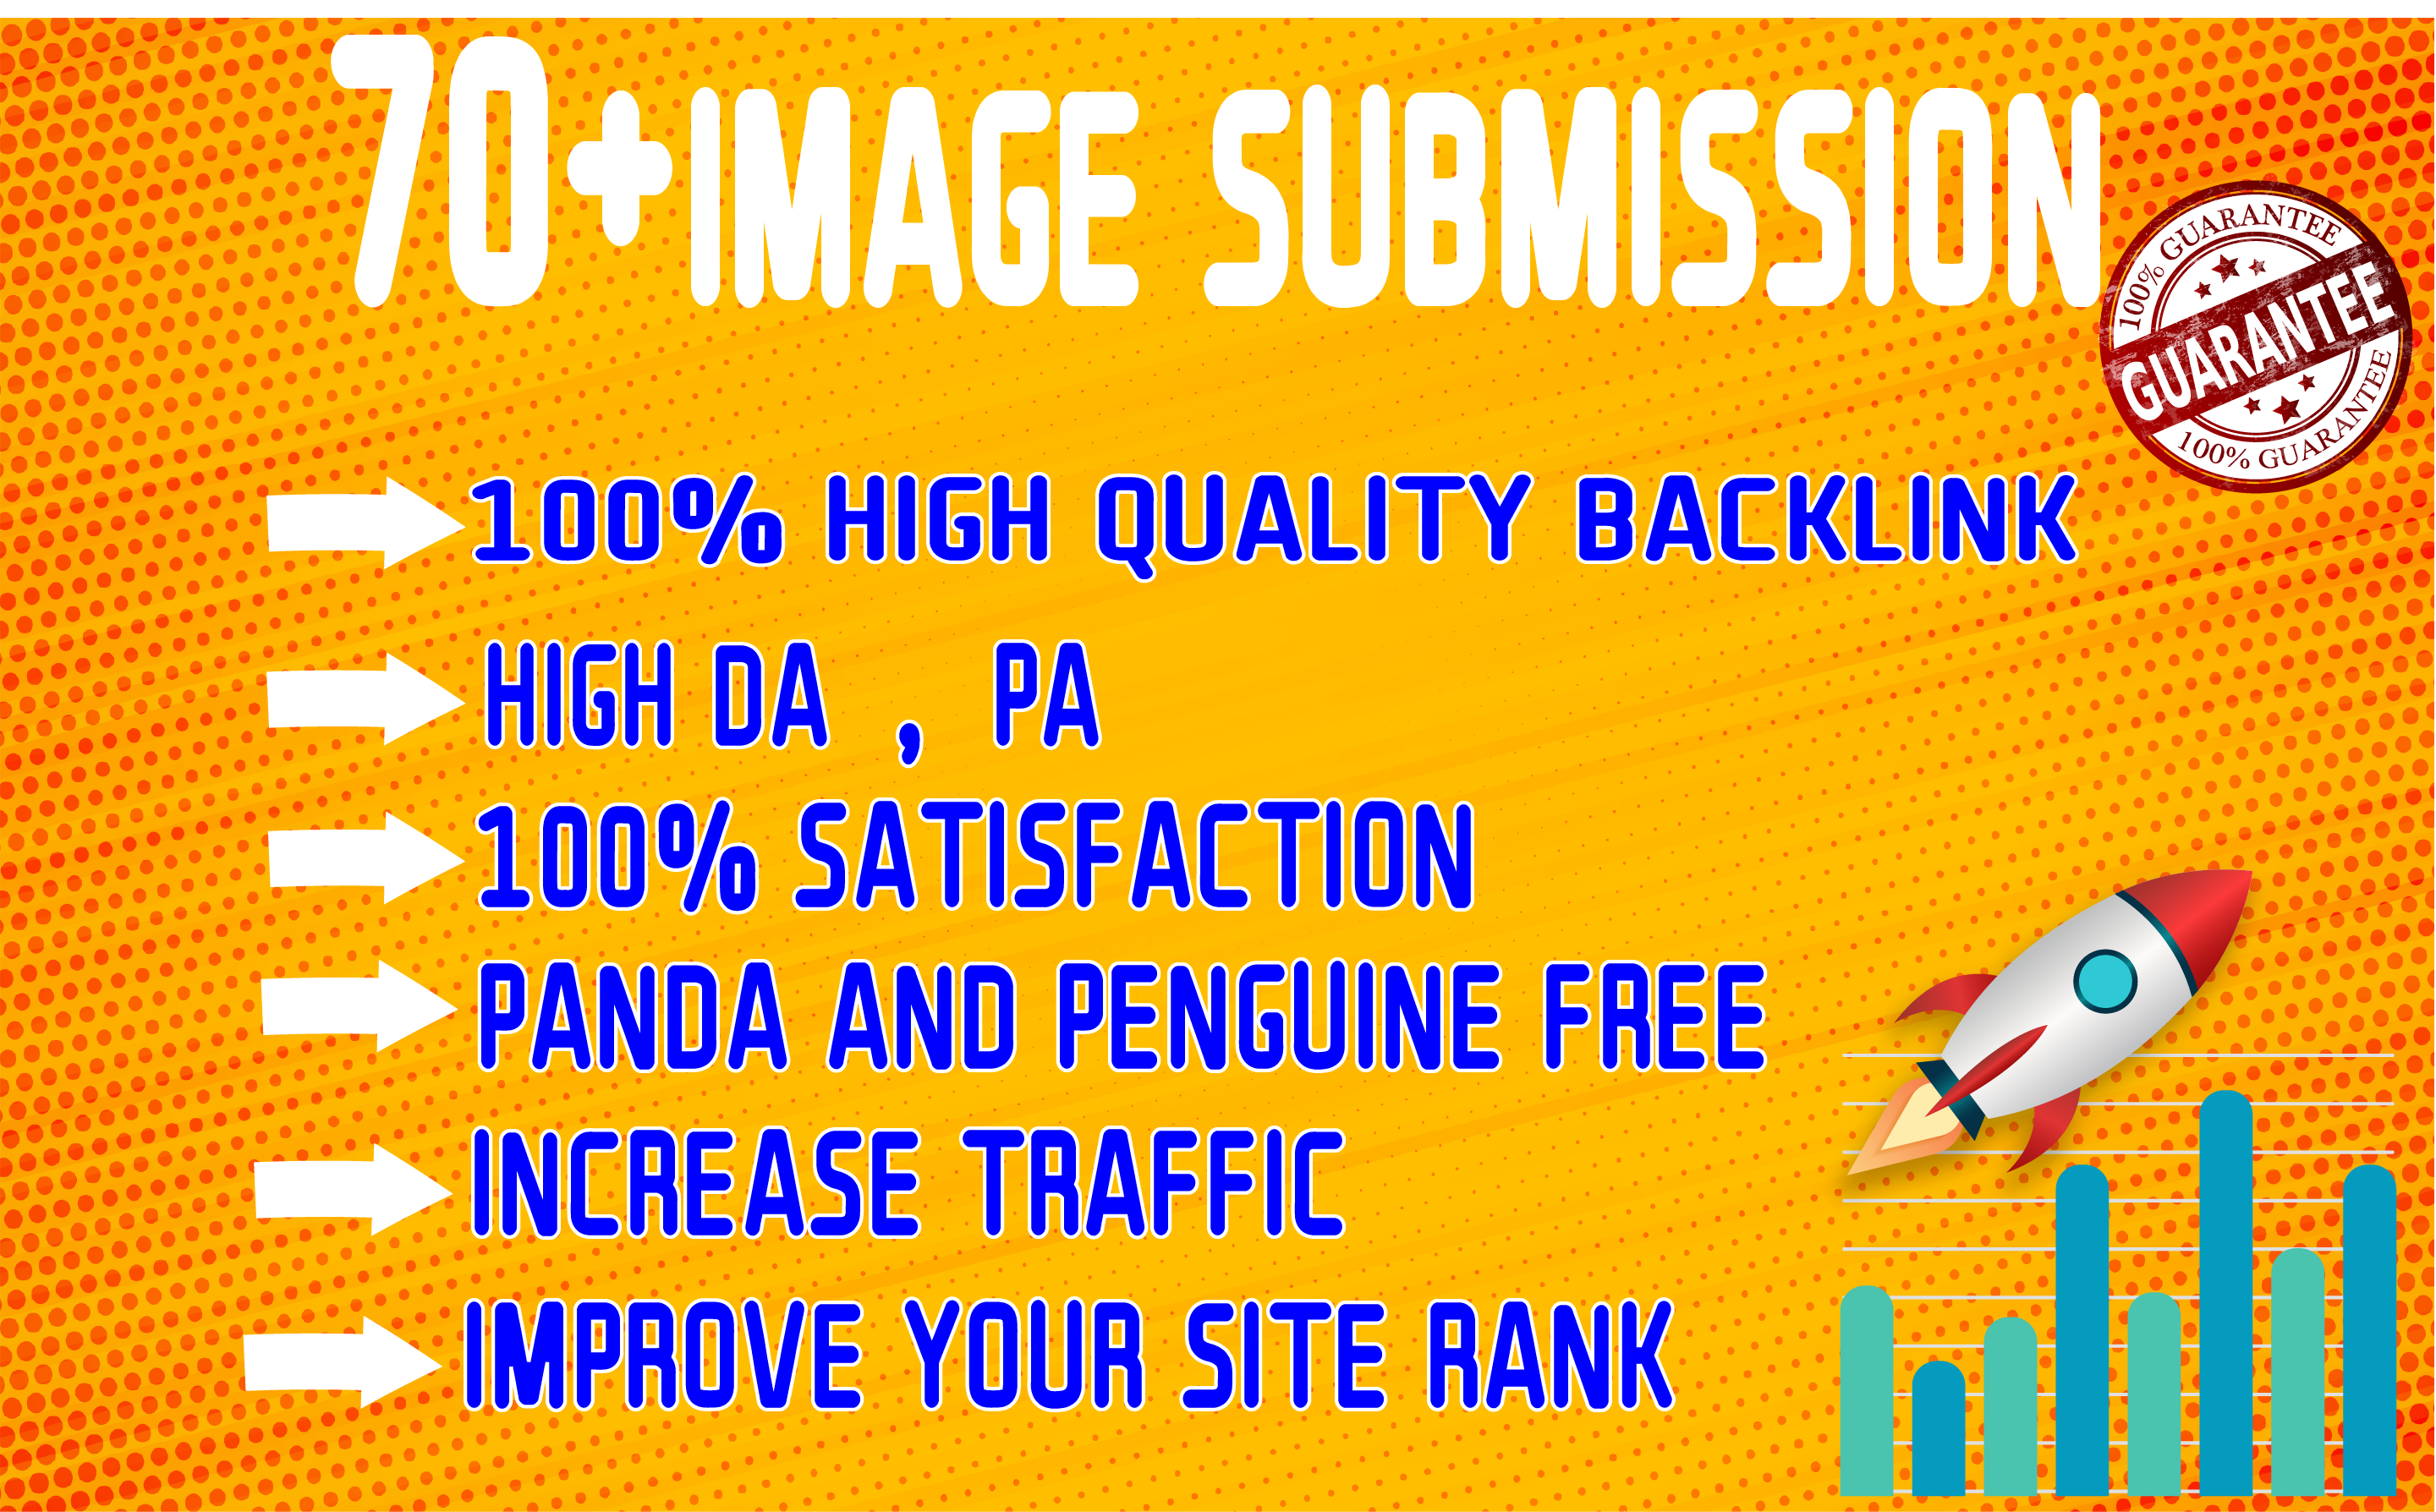 I will do infographic or image submission service to rank site